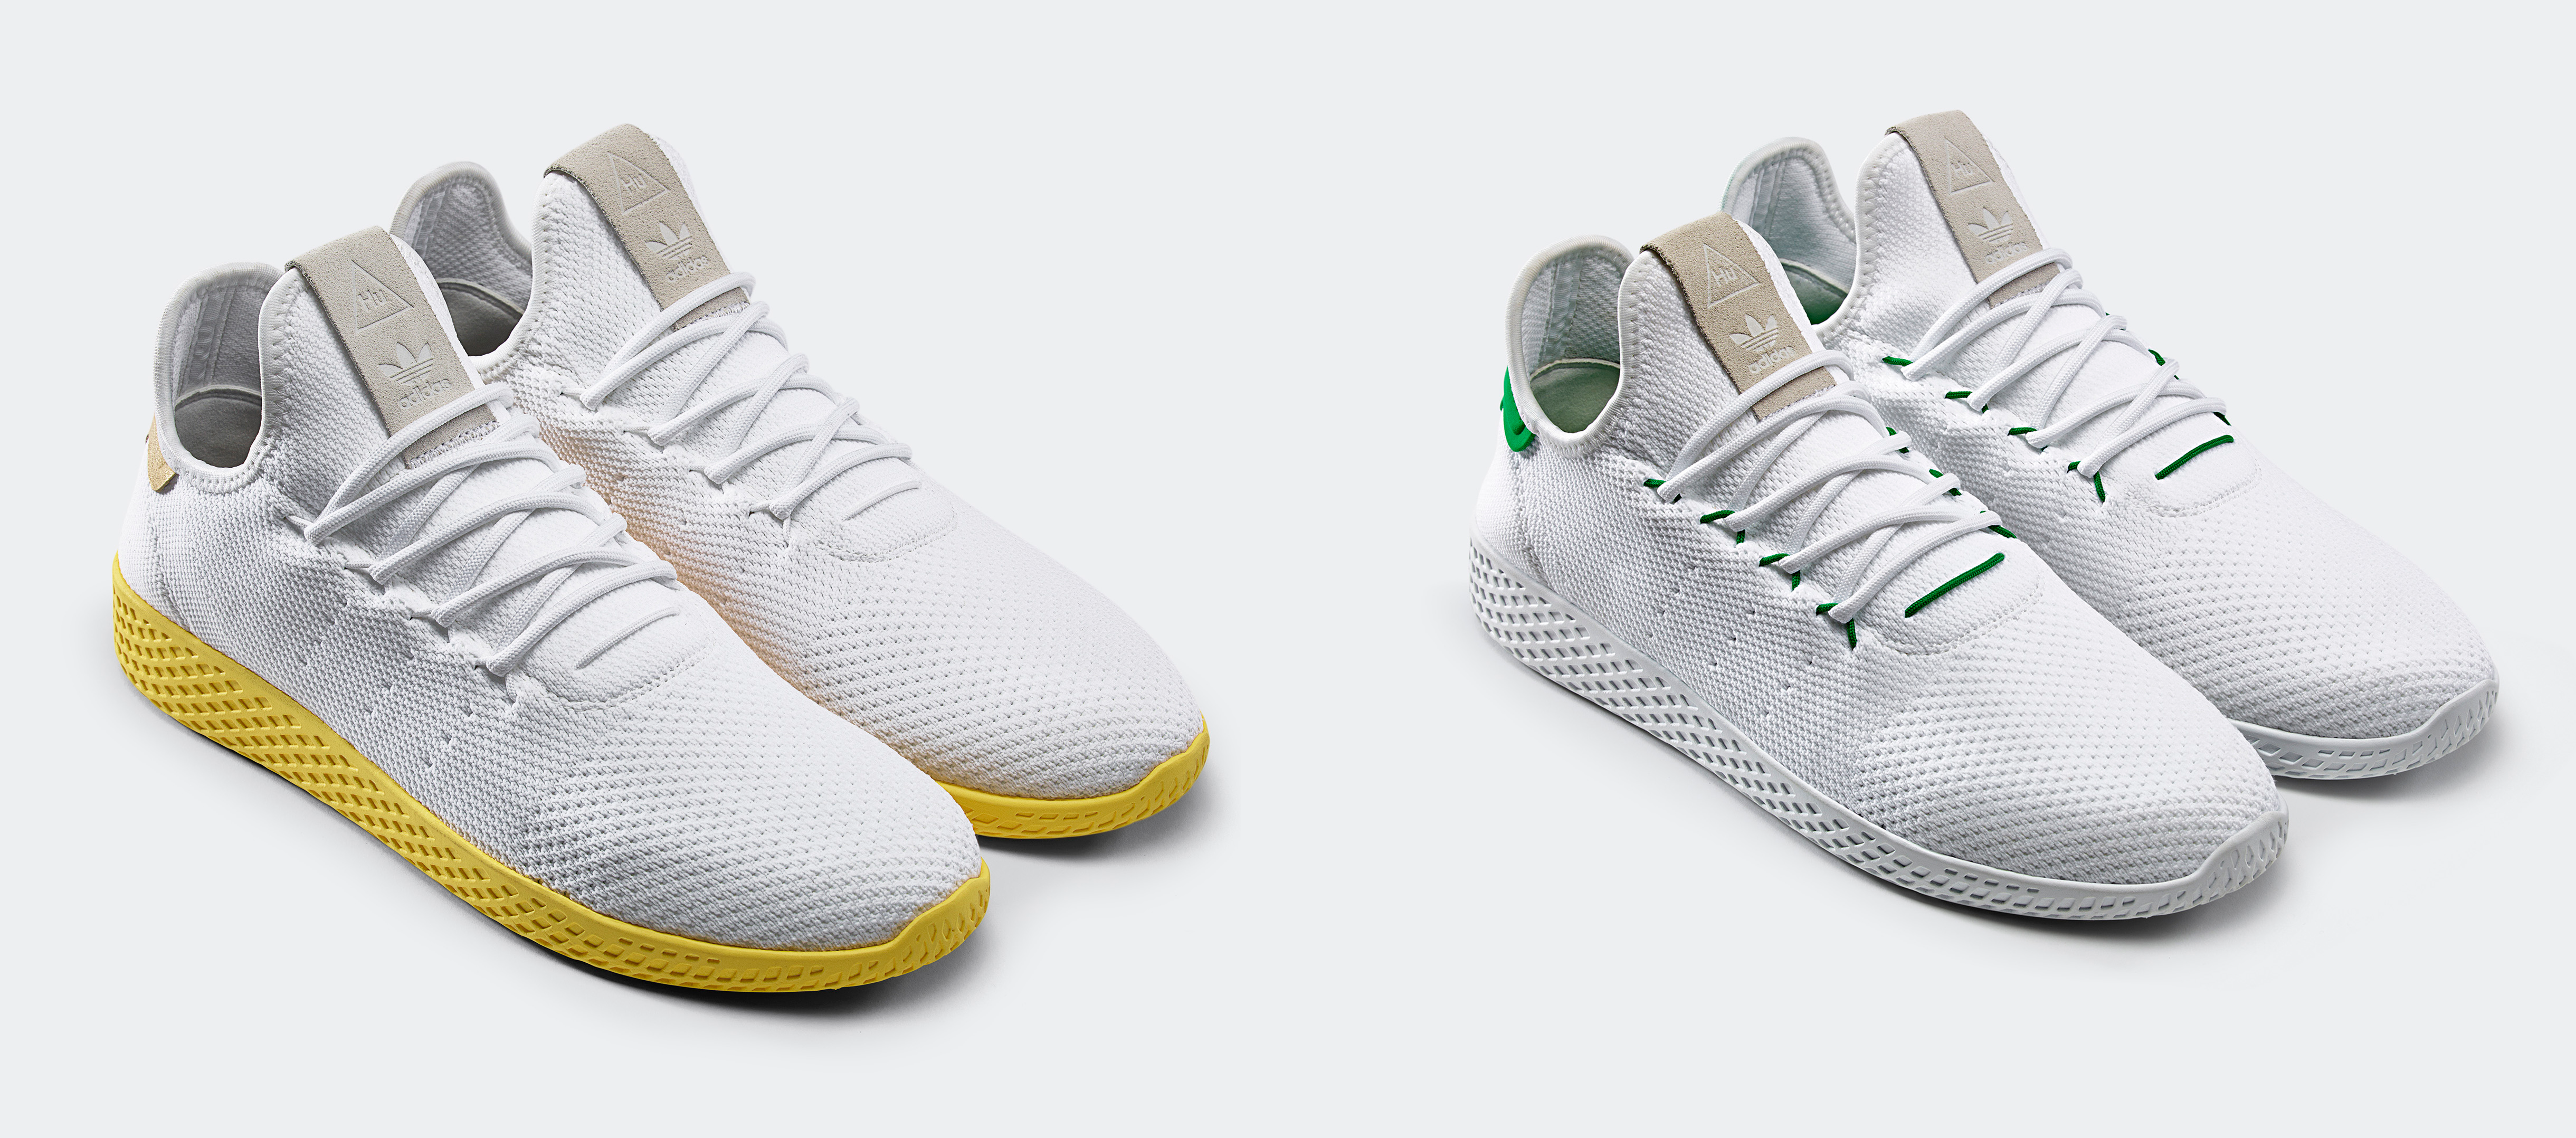 a455fede6e7a adidas Confirms Singapore Release For Pharrell s Tennis Hu Sneakers